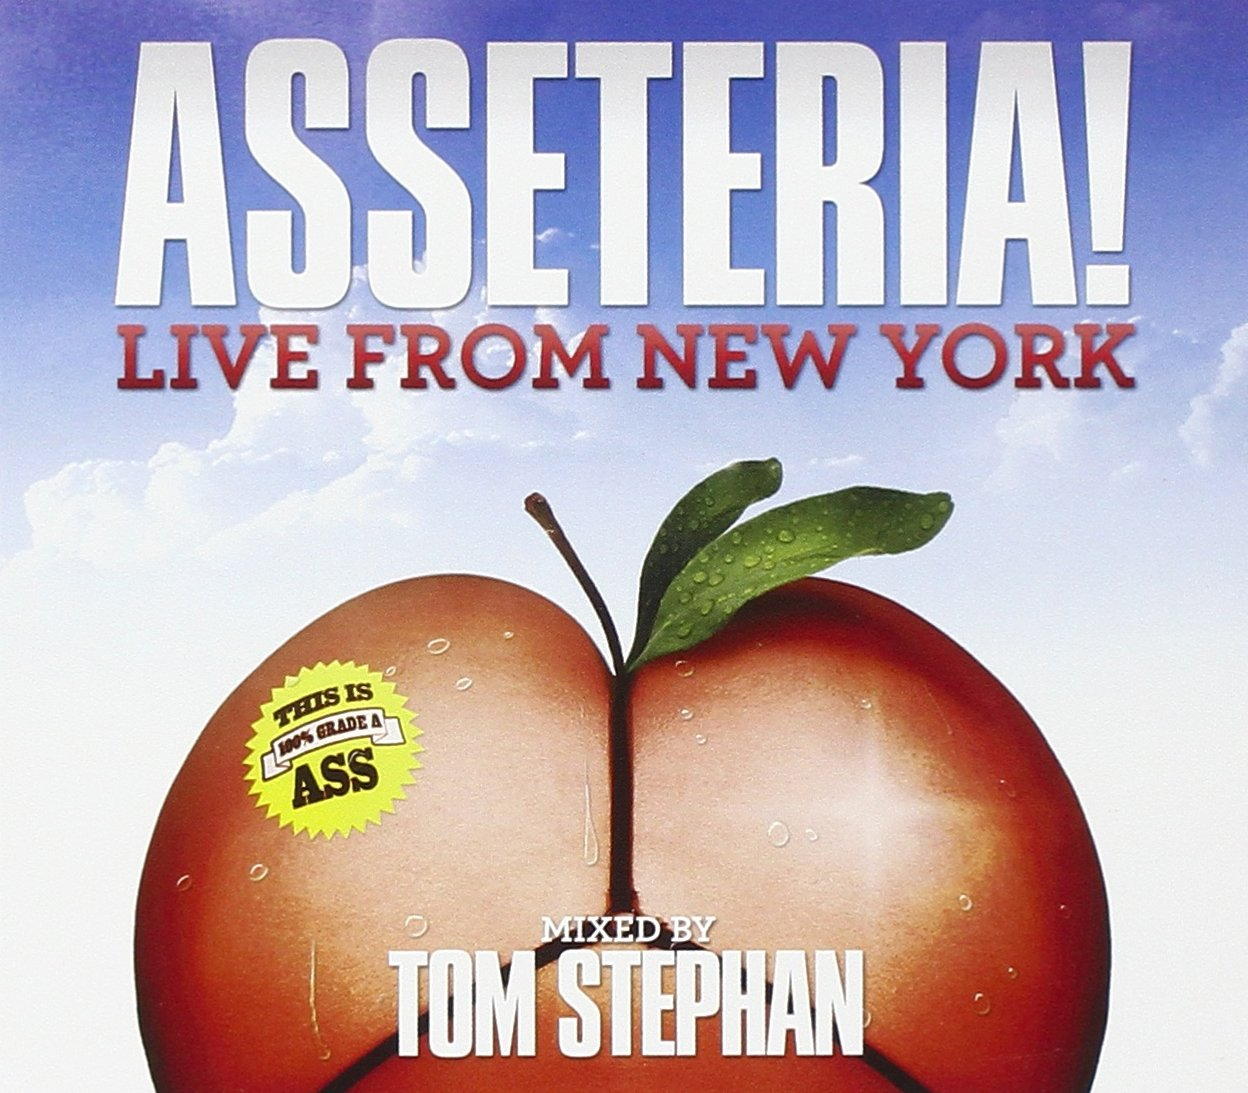 Asseteria! Live from New York